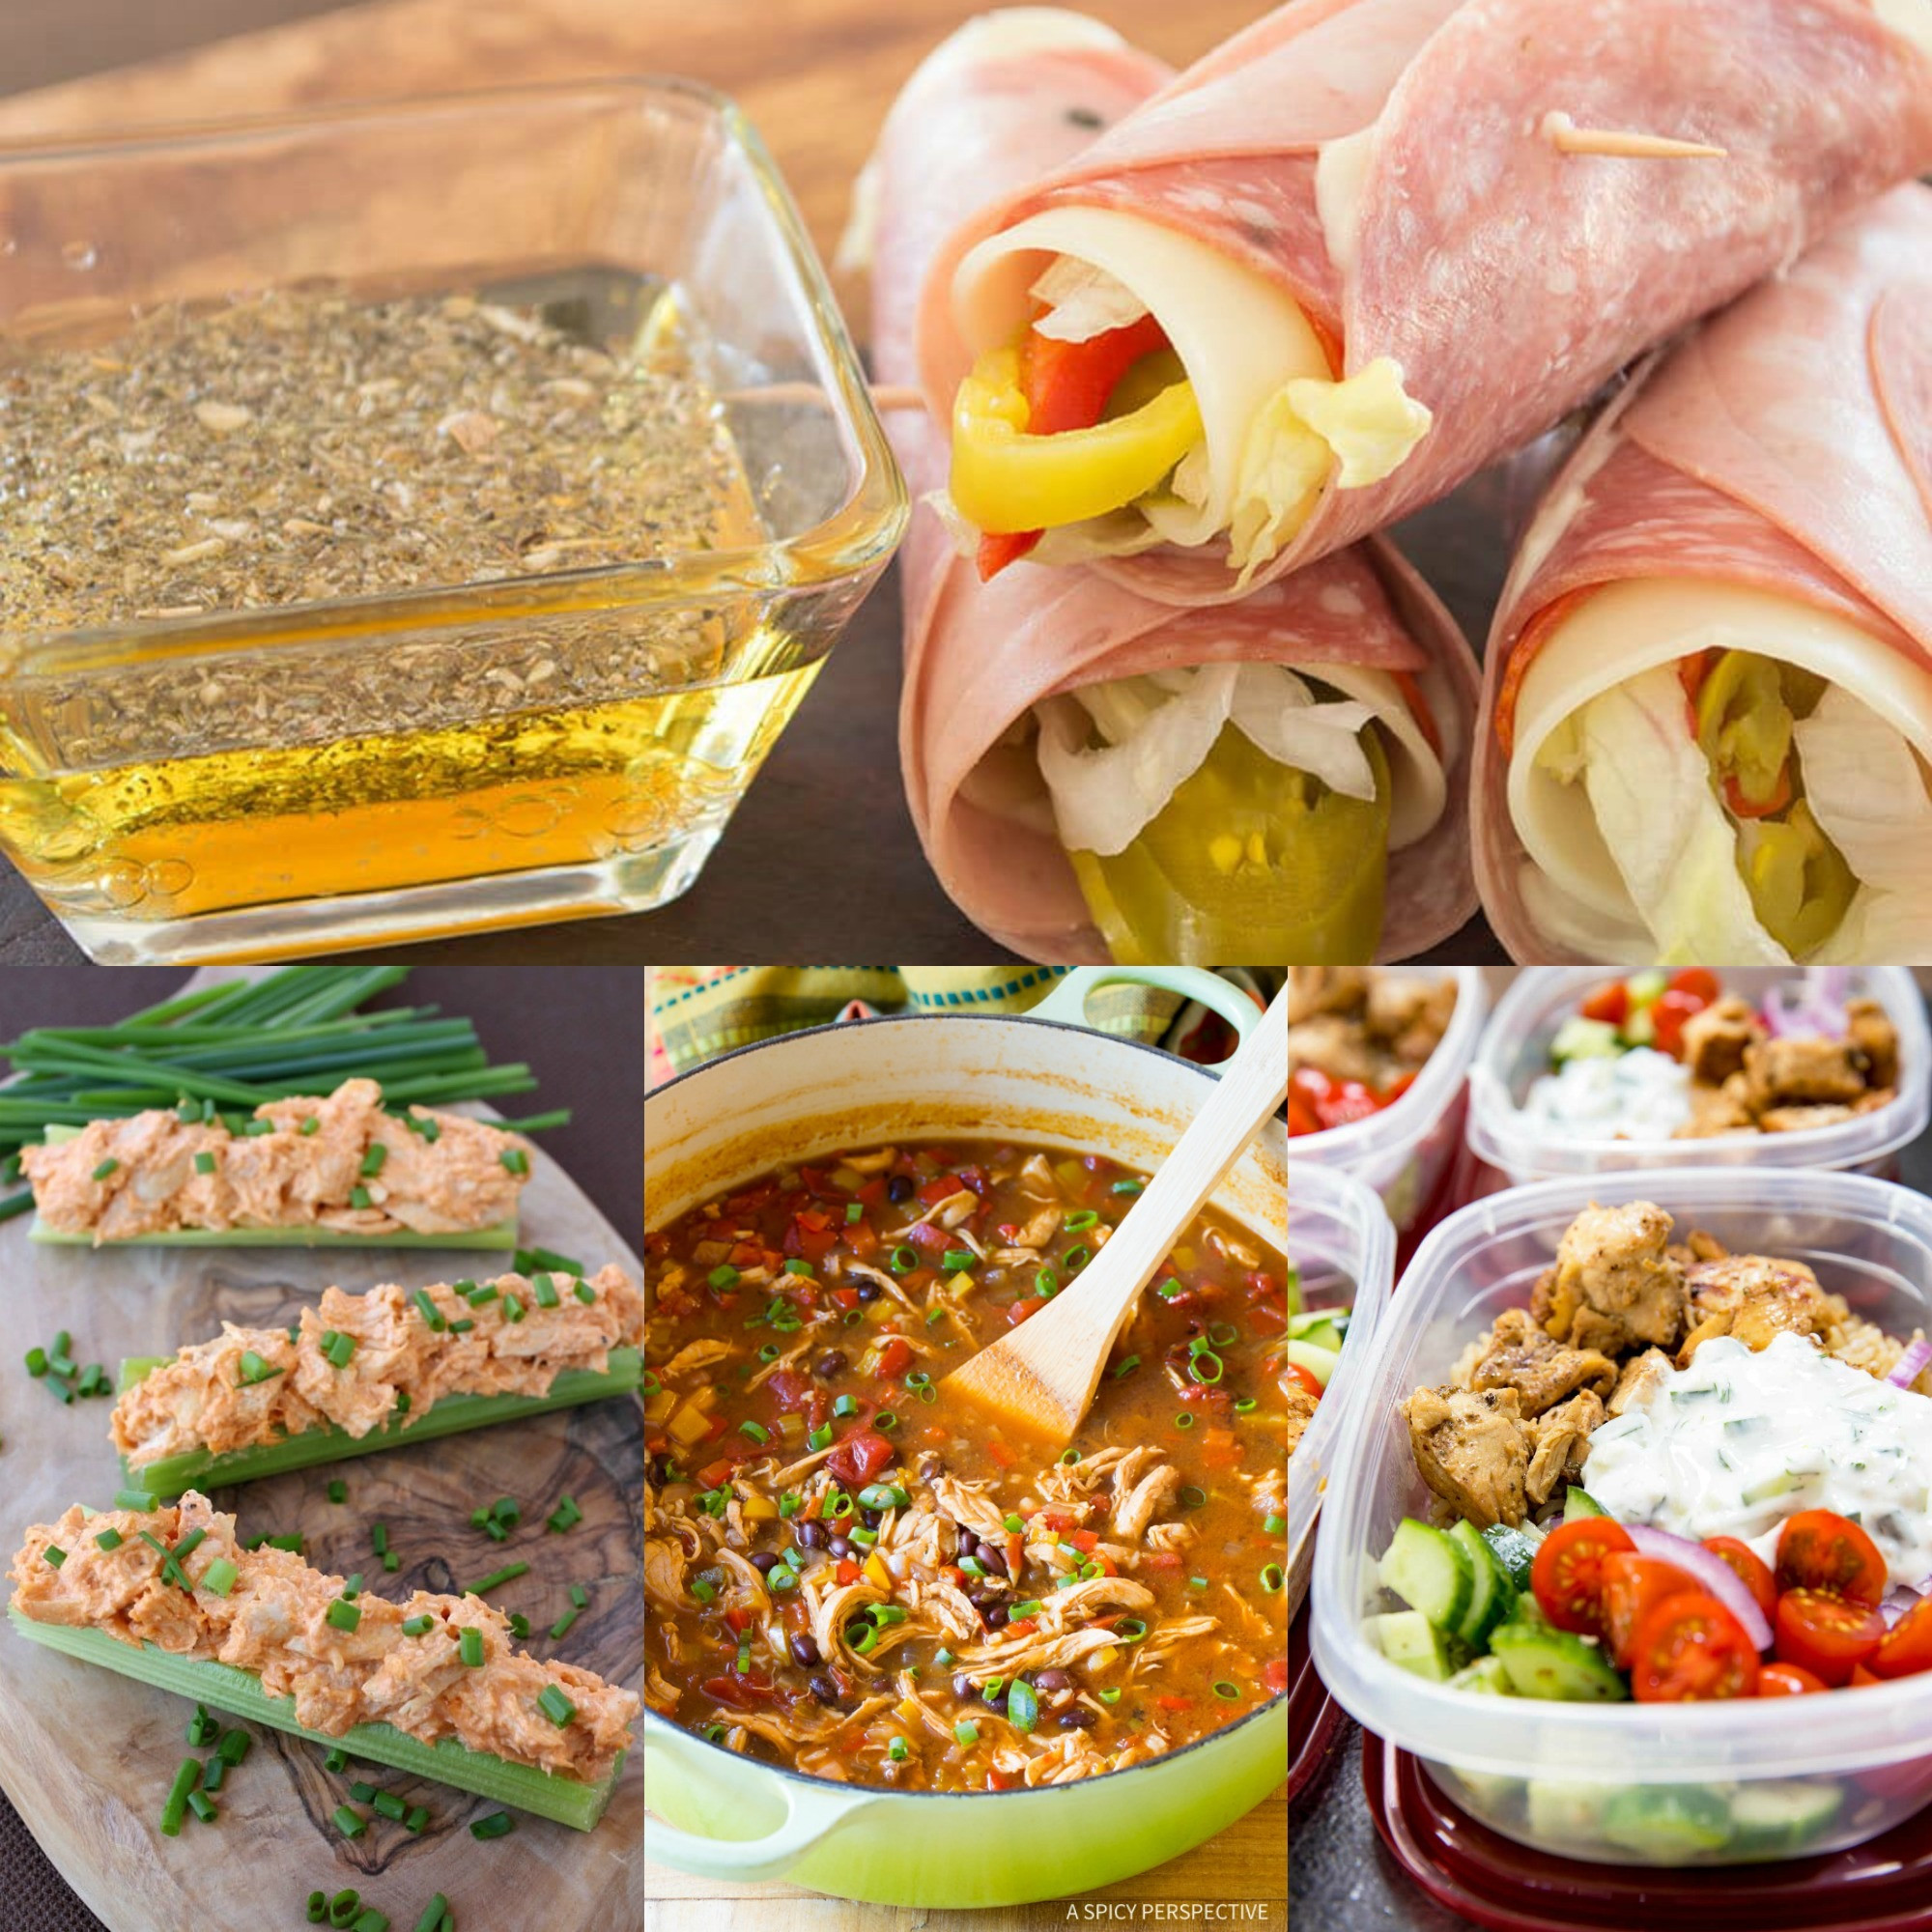 Low Fat Keto Recipes  A Week of Keto Recipes That Taste Amazing And Help You